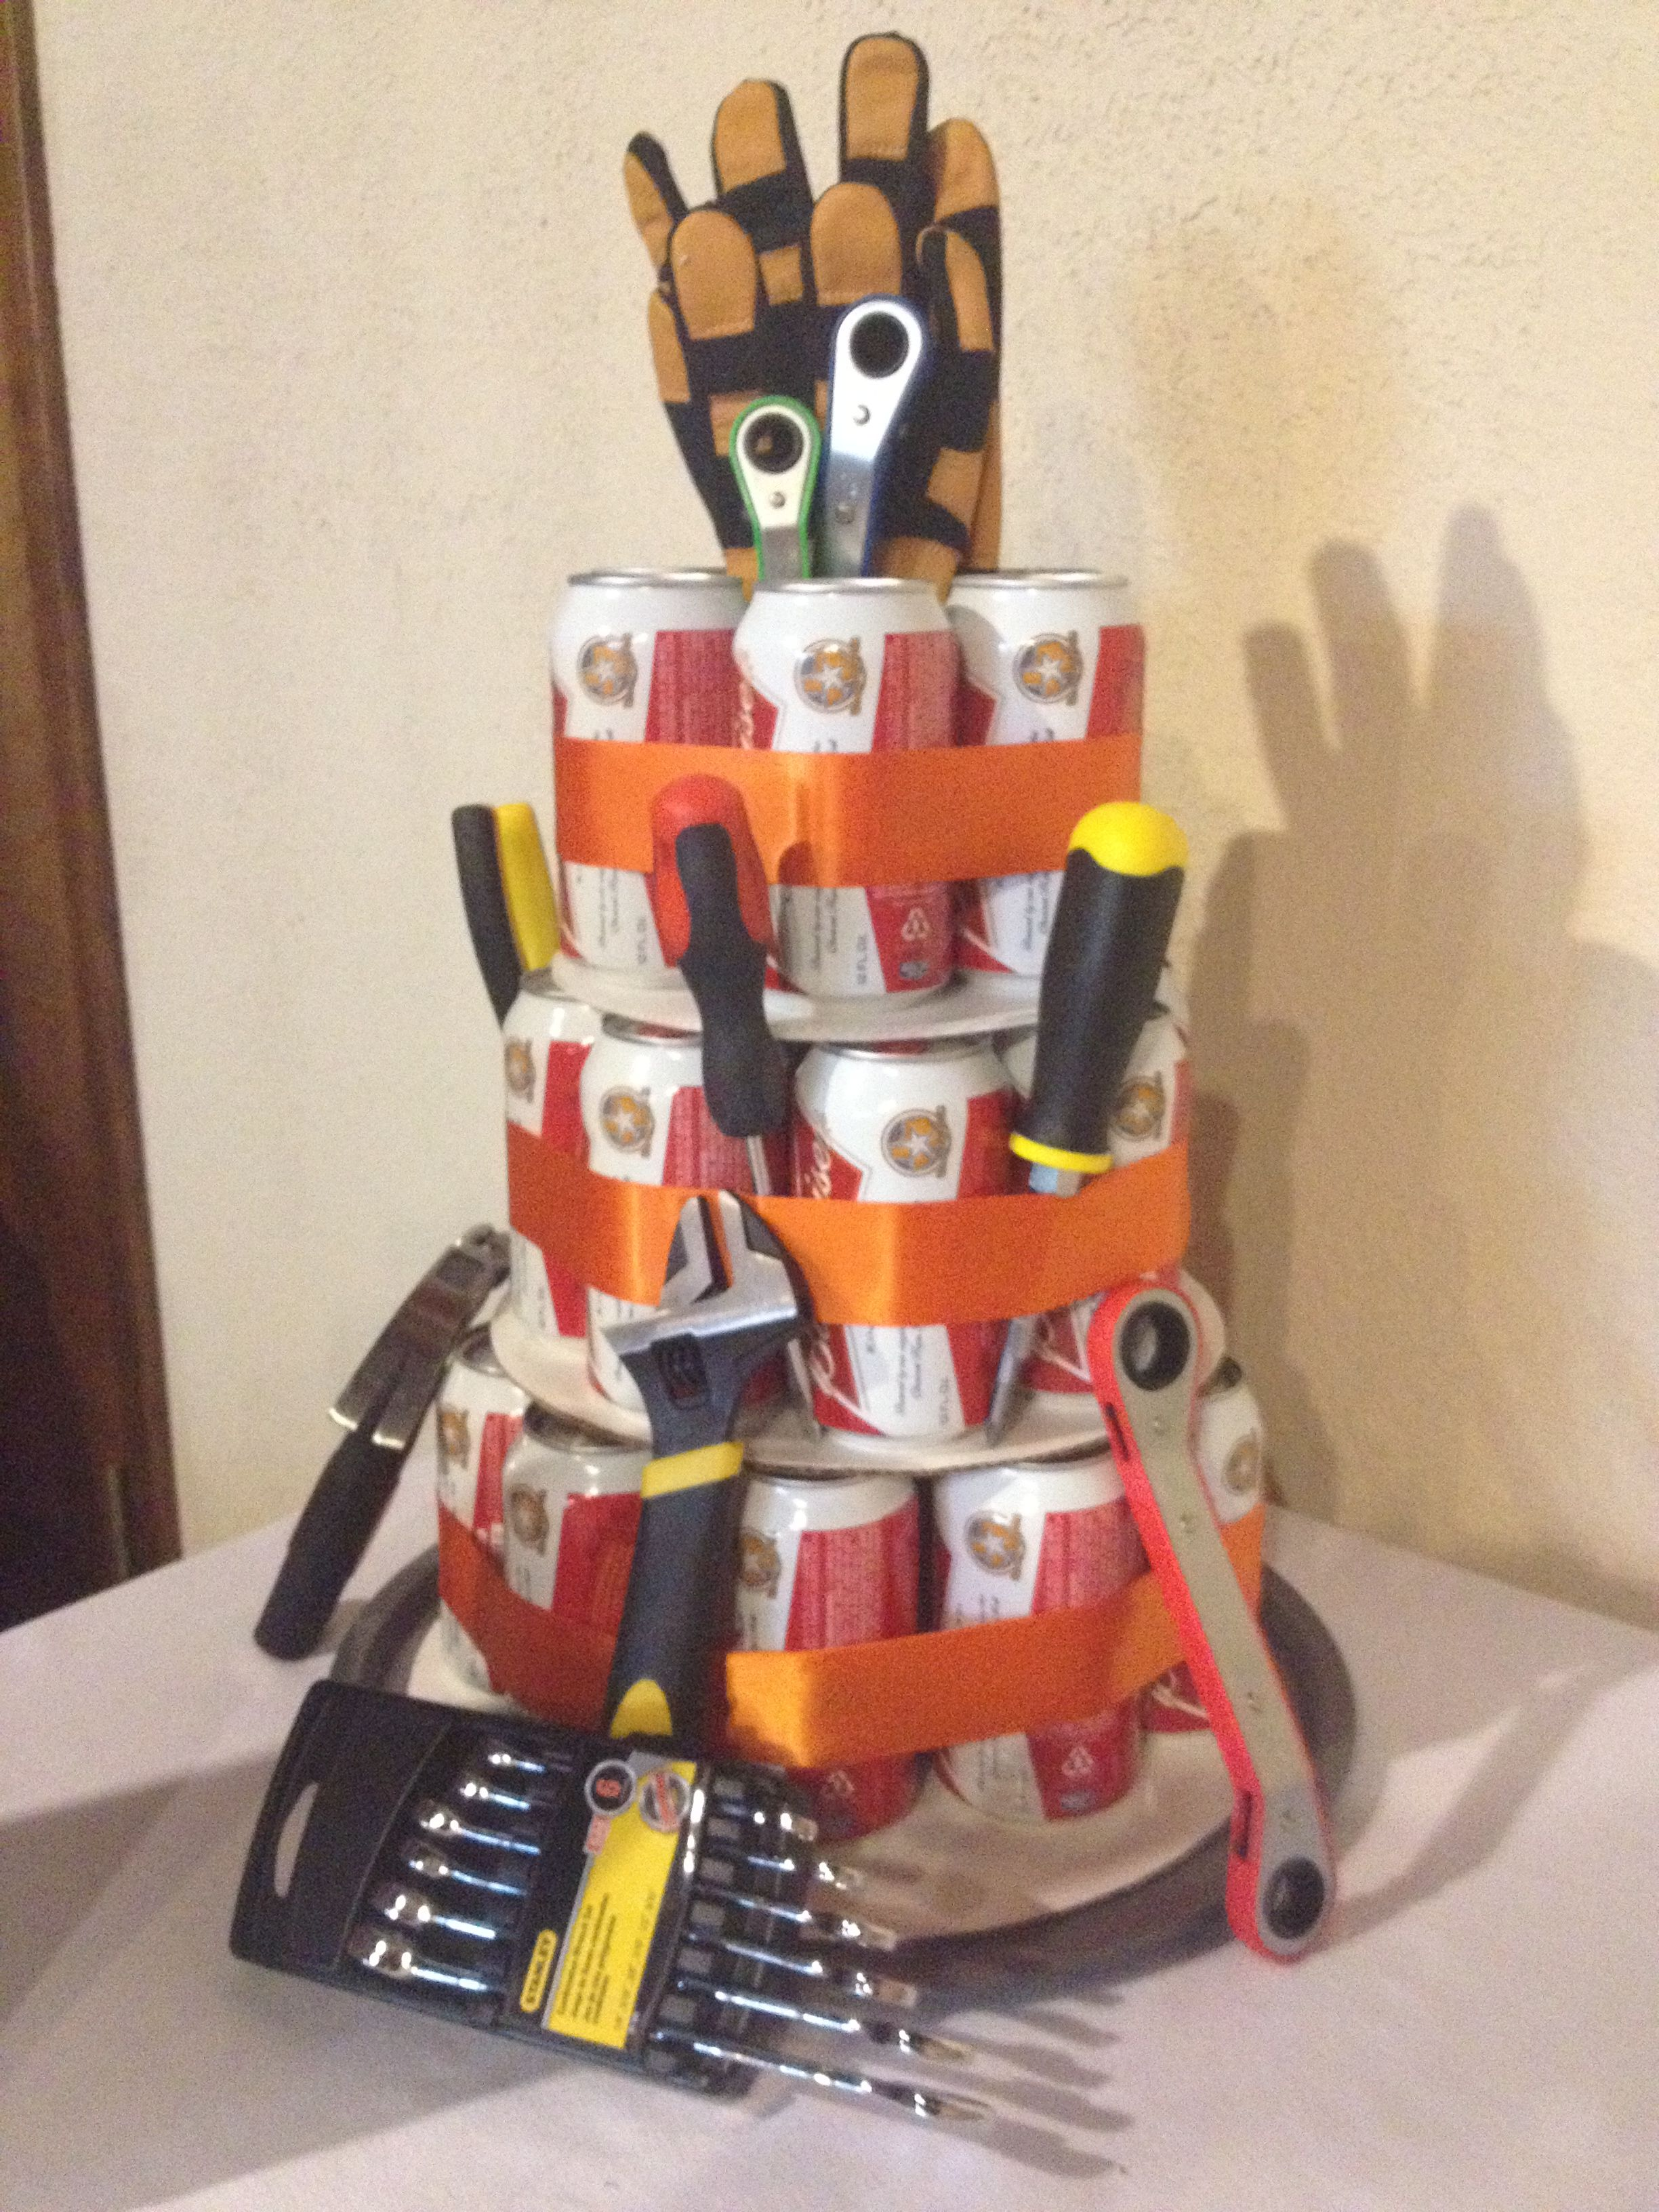 Groom's Beer/tool cake for couple's shower Honey do